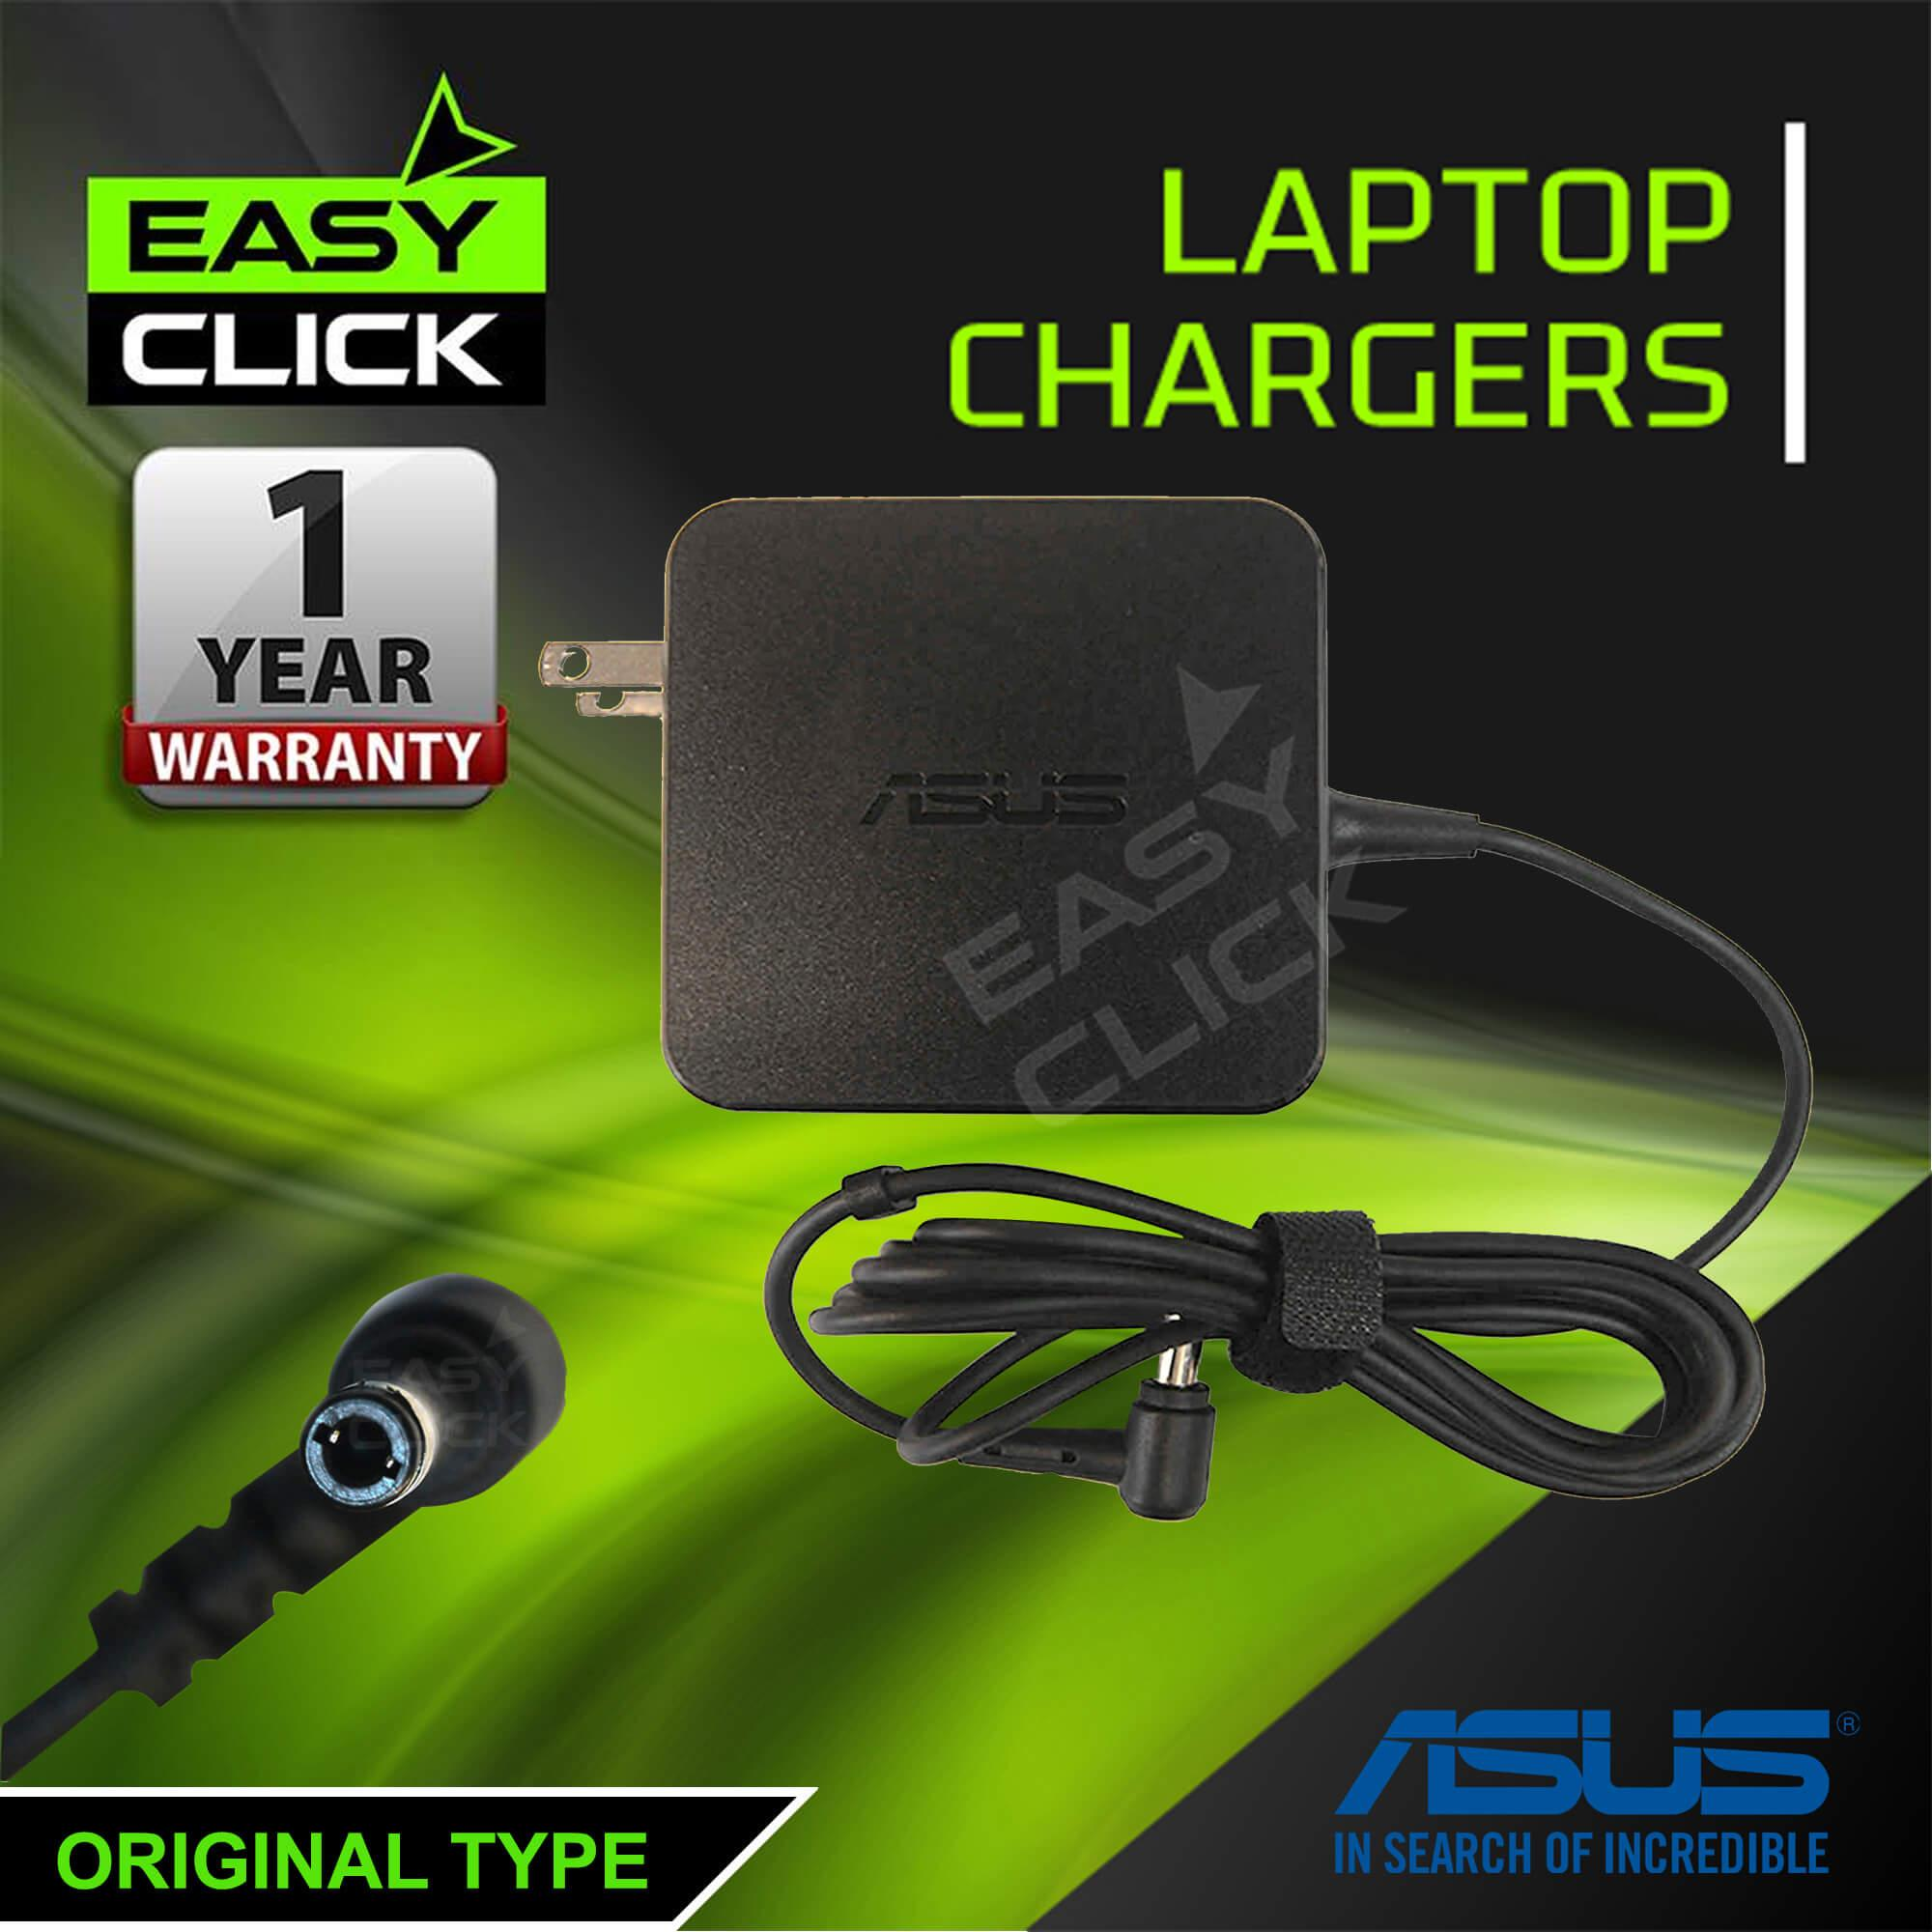 ASUS X450VC USB Charger Plus Download Driver